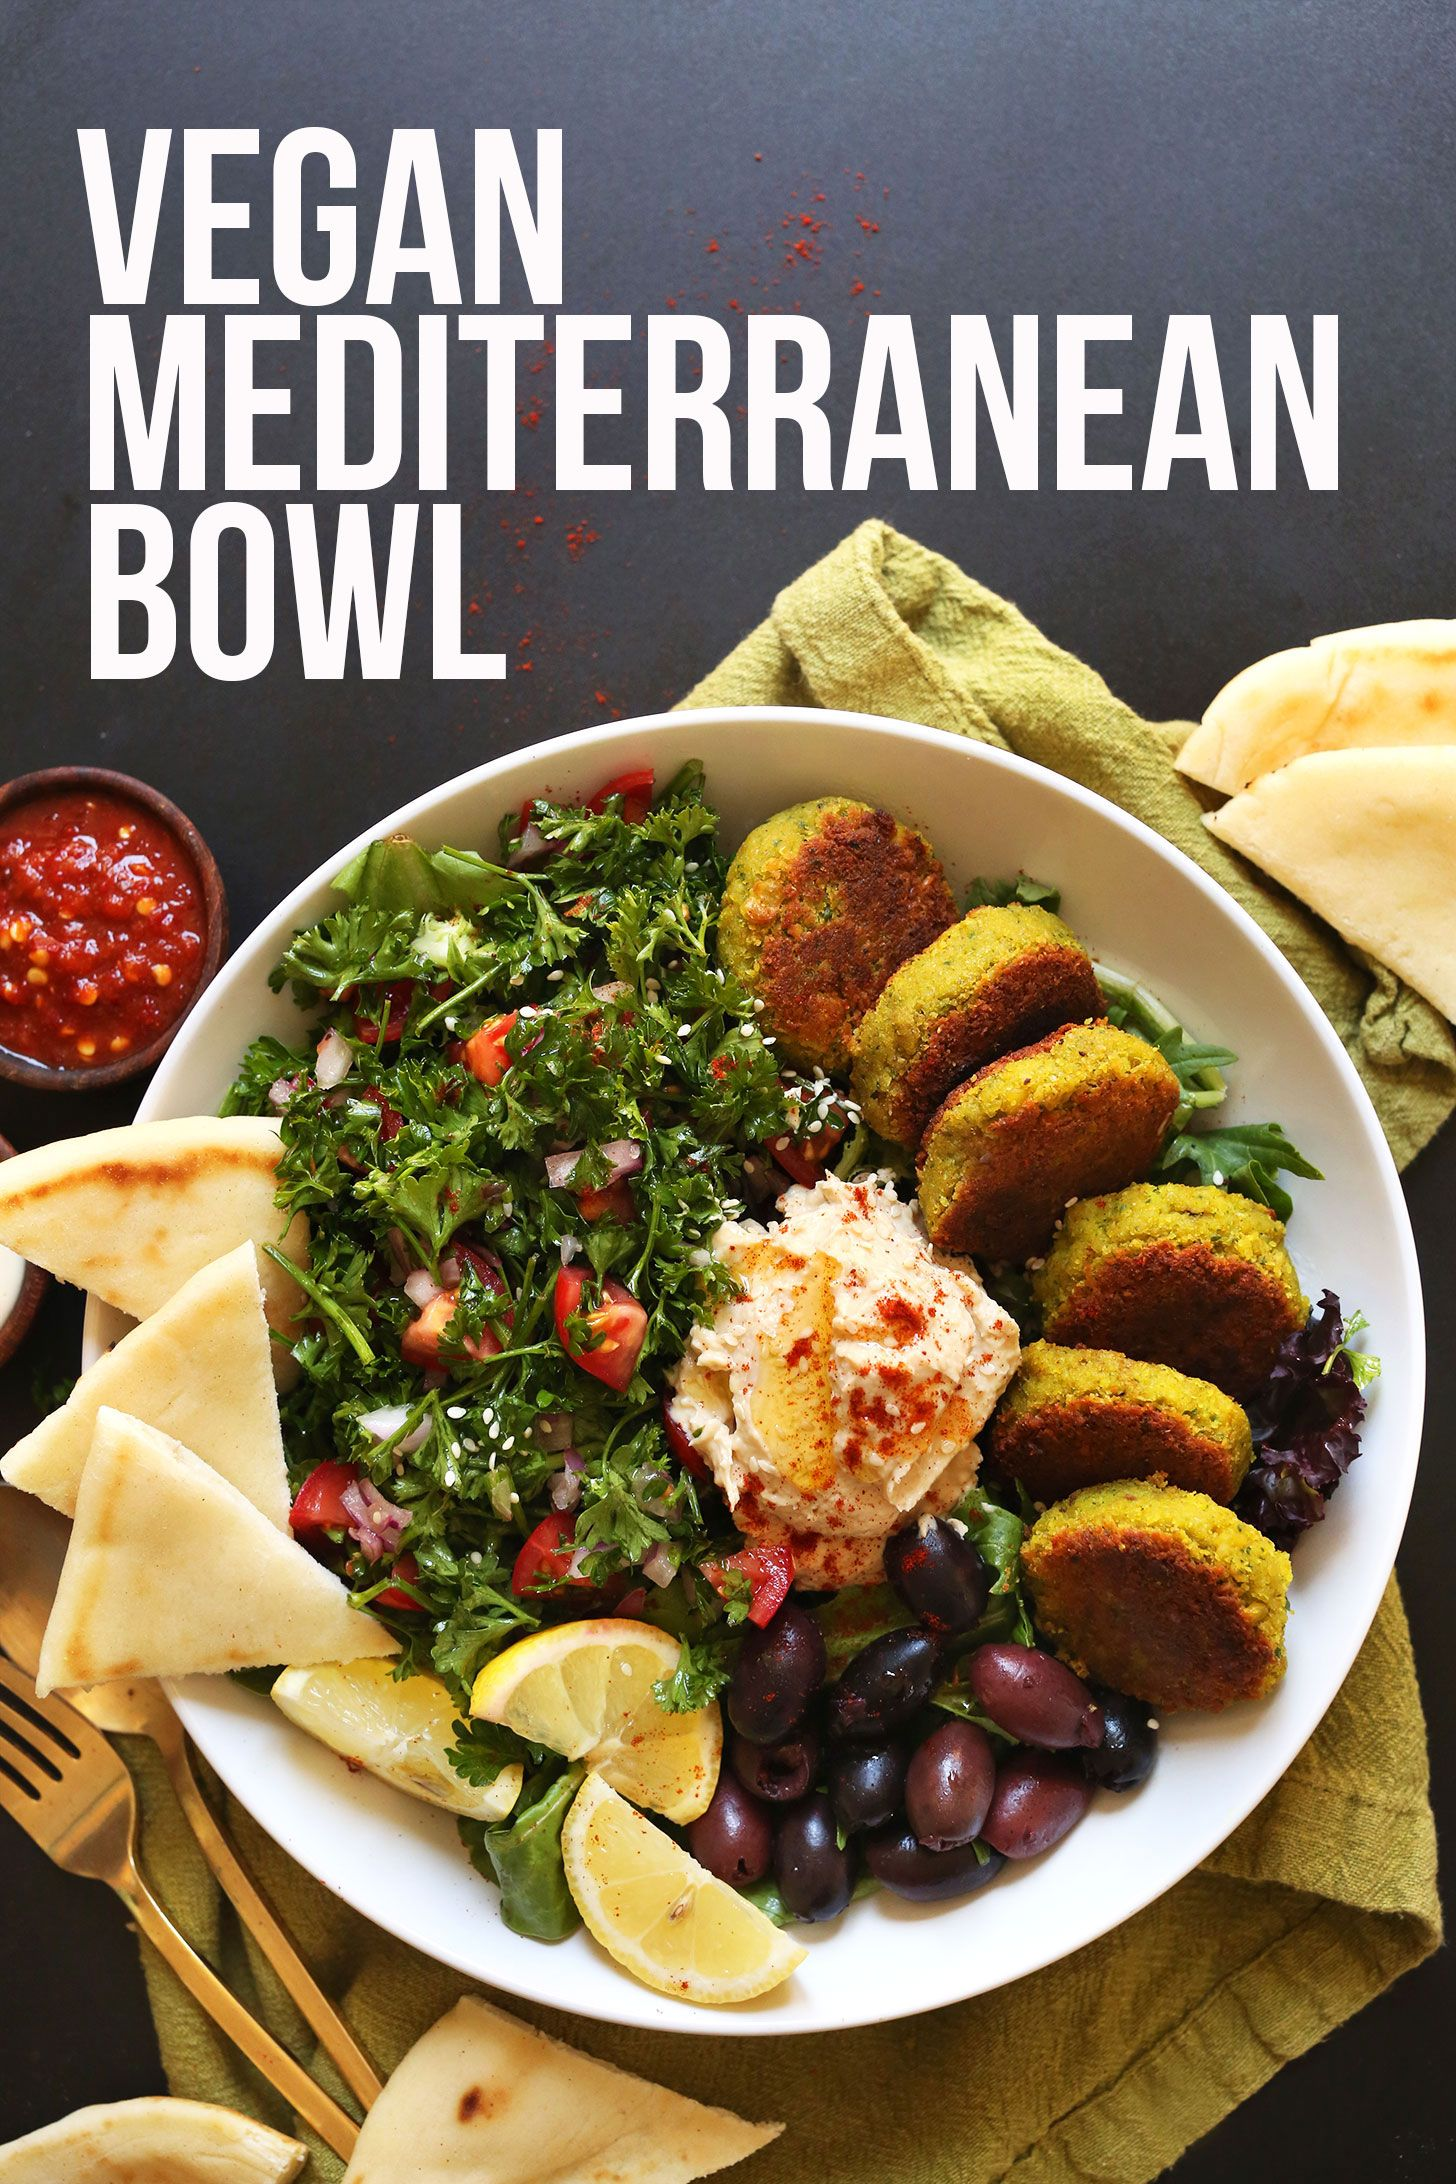 The Ultimate Mediterranean Bowl With Hummus Falafel Tahini Sauce Olives And